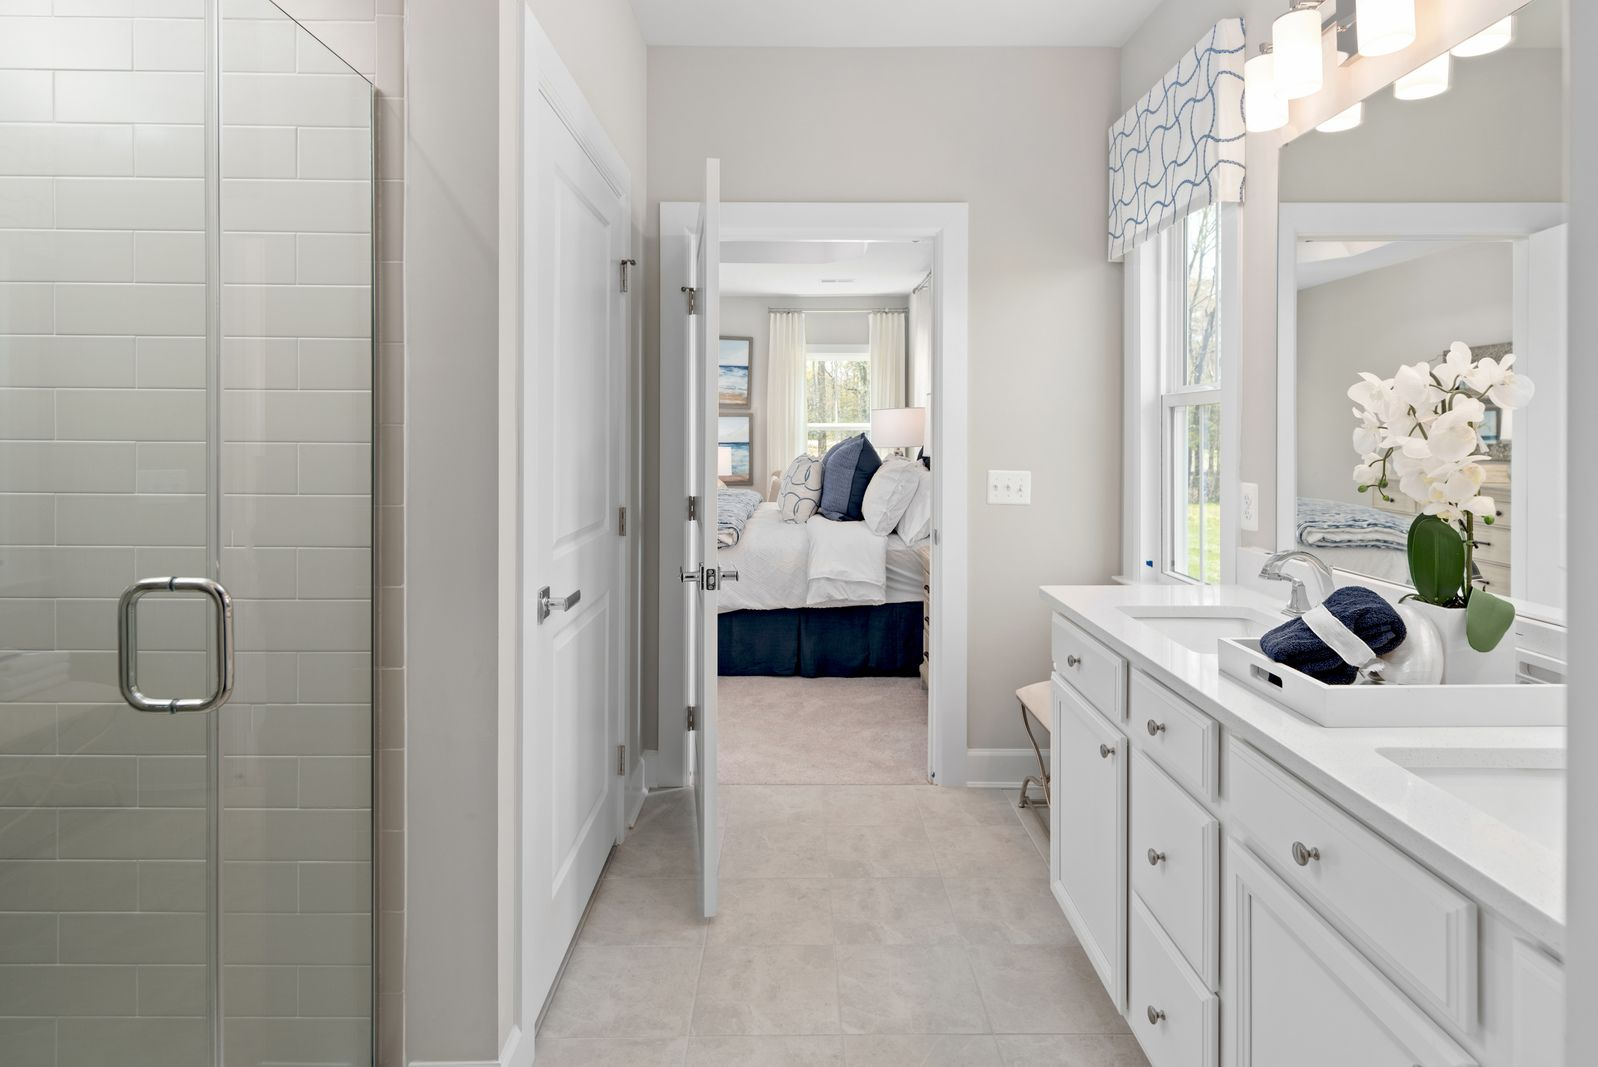 Bathroom featured in the Stapleton Duplex By HeartlandHomes in Pittsburgh, PA